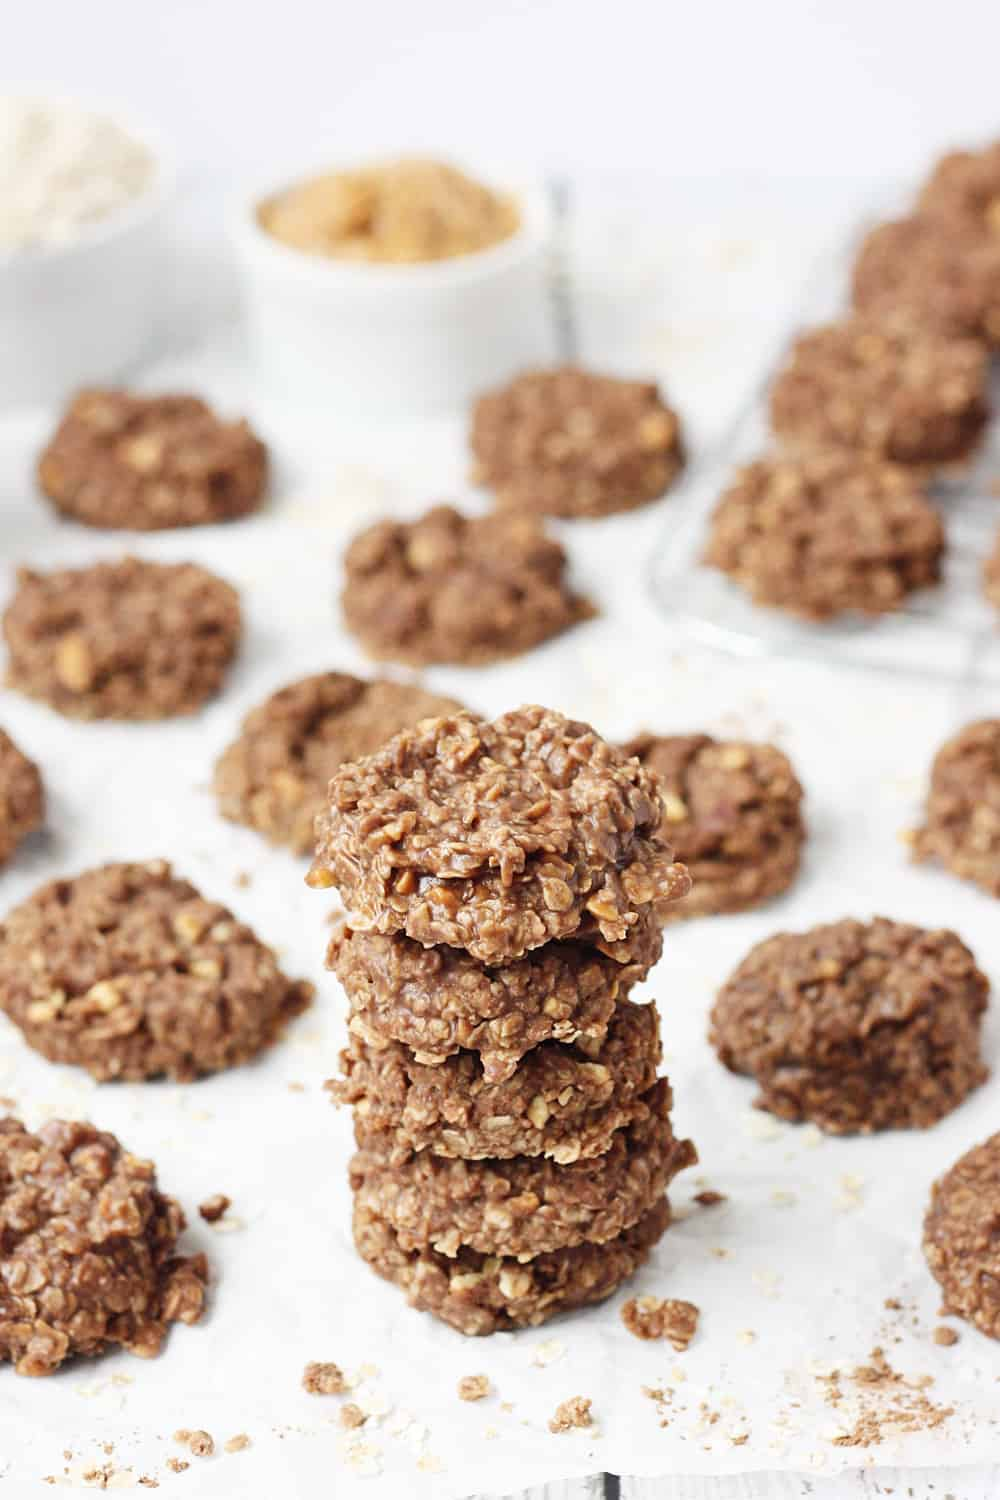 Crunchy Peanut Butter No-Bake Cookies -- I do not make crunchy peanut butter no-bake cookies very often because I can not resist eating the entire batch! These no-bake cookies take about 15 minutes from start to finish and have the perfect combination of peanut butter, chocolate, and oatmeal. | halfscratched.com #cookies #chocolate #peanutbutter #oatmeal #recipe #dessert